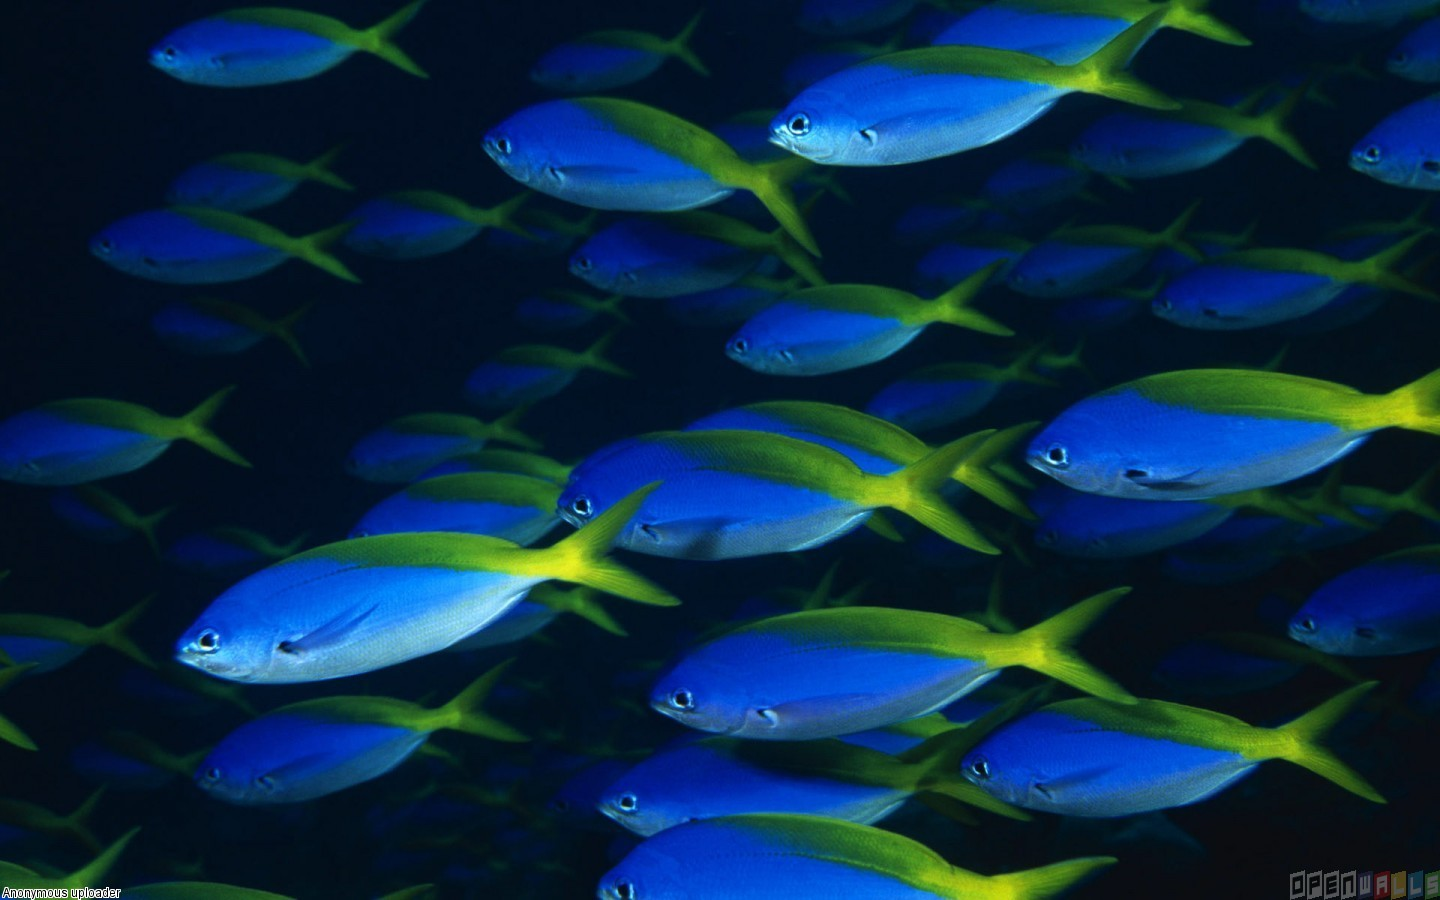 Blue Ocean Wallpaper with Fish